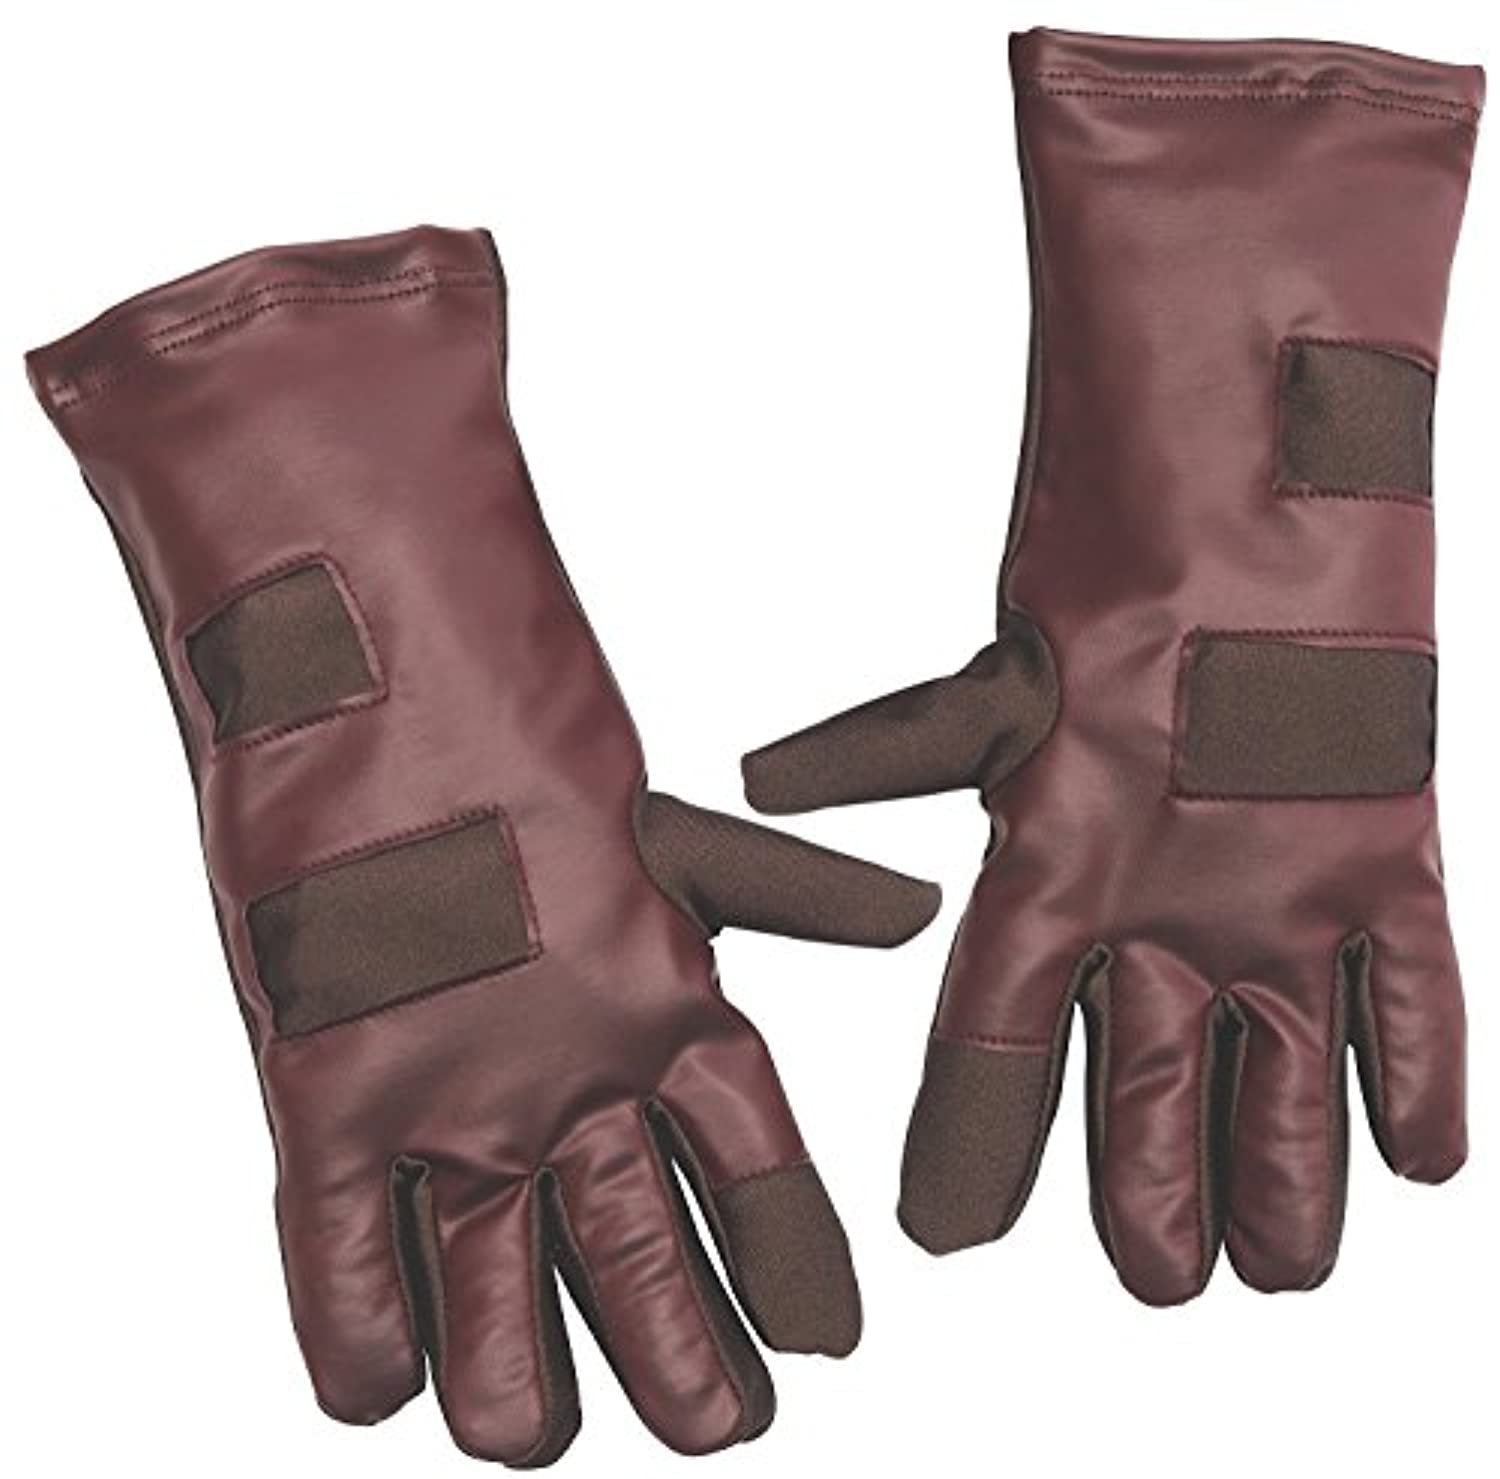 Guardians of the Galaxy - Kids Star-Lord Gloves [並行輸入品]